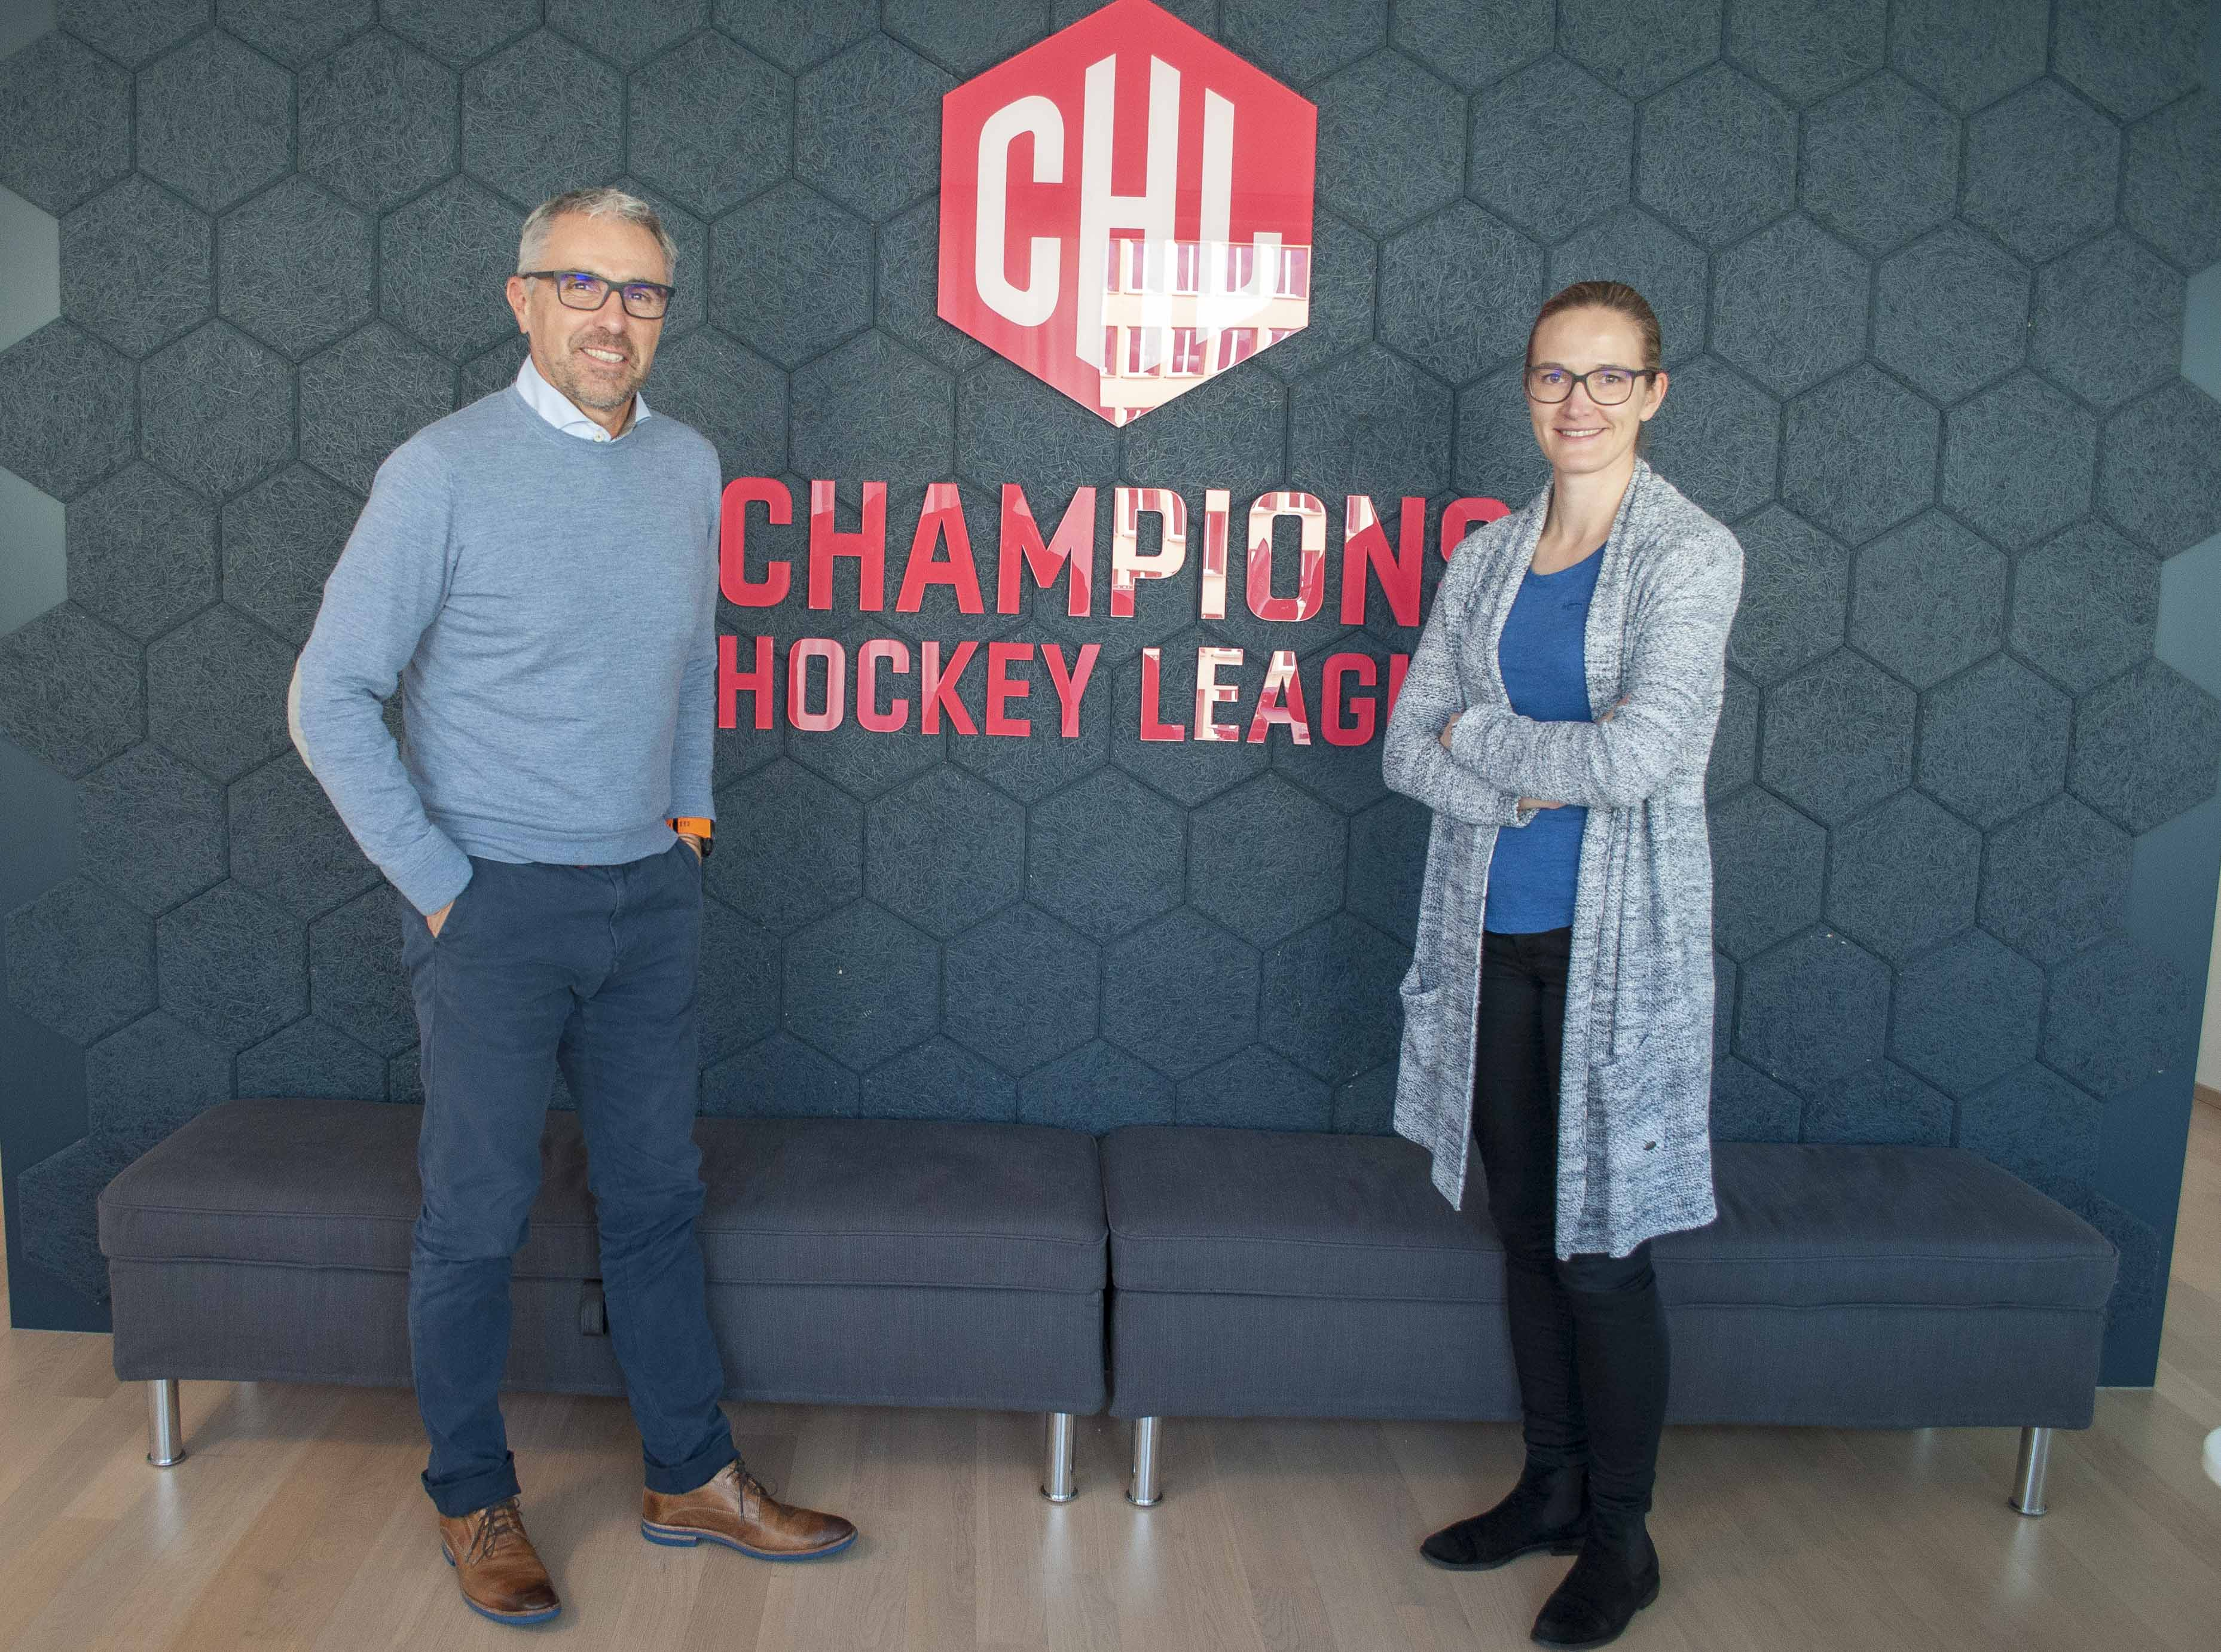 Champions Hockey League AG: CEO Martin Baumann (links) und Kommunikationschefin Monika Reinhard.